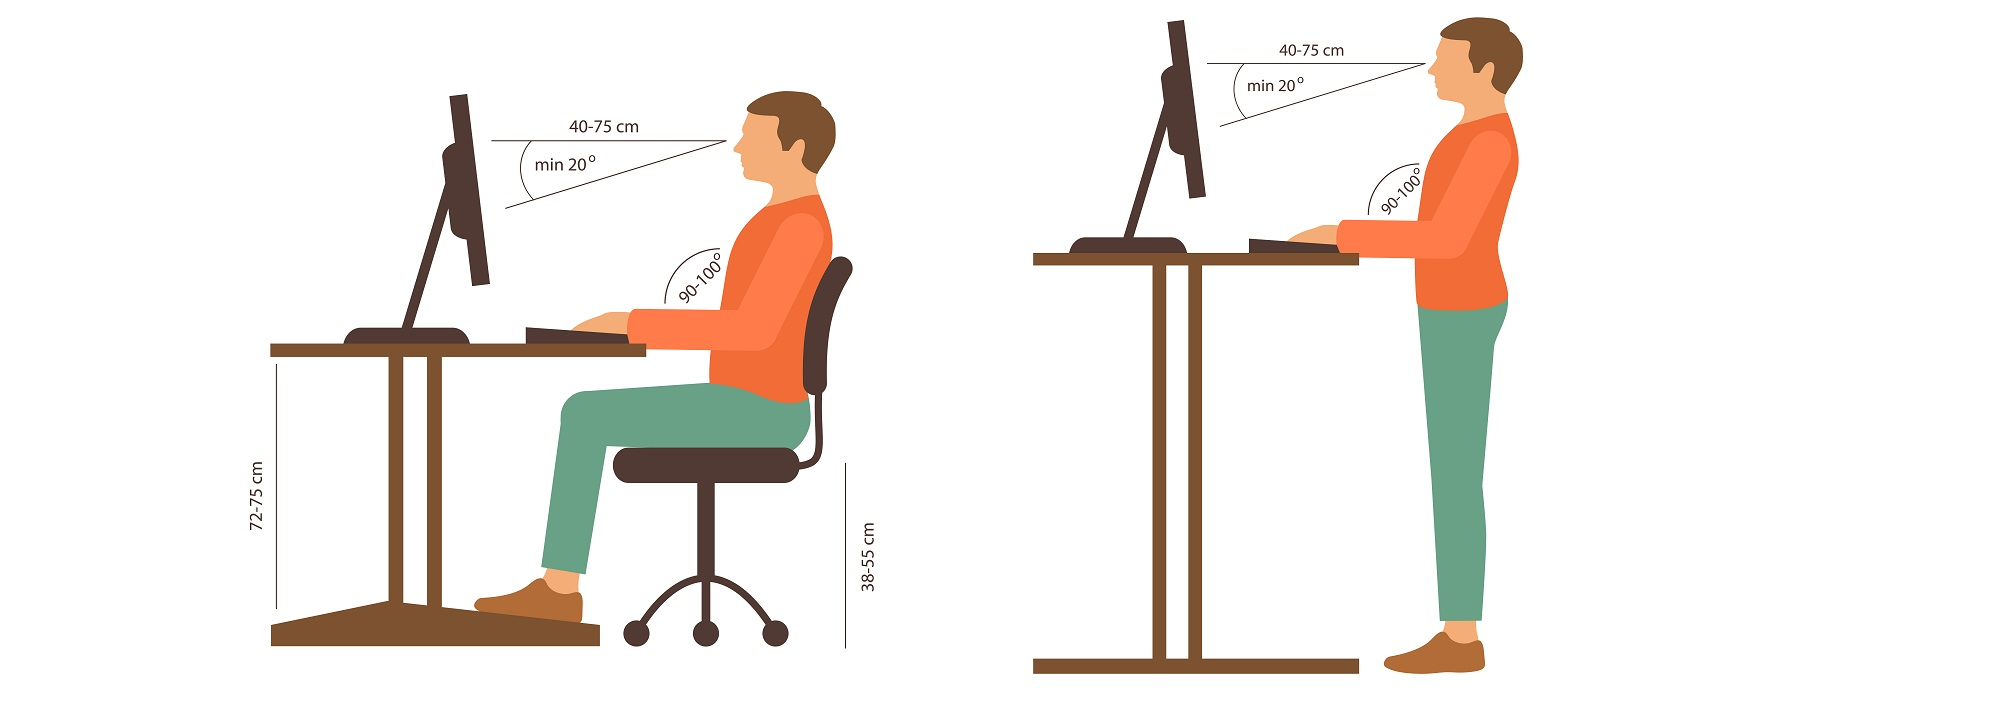 stand-up-for-ergonomics-posture